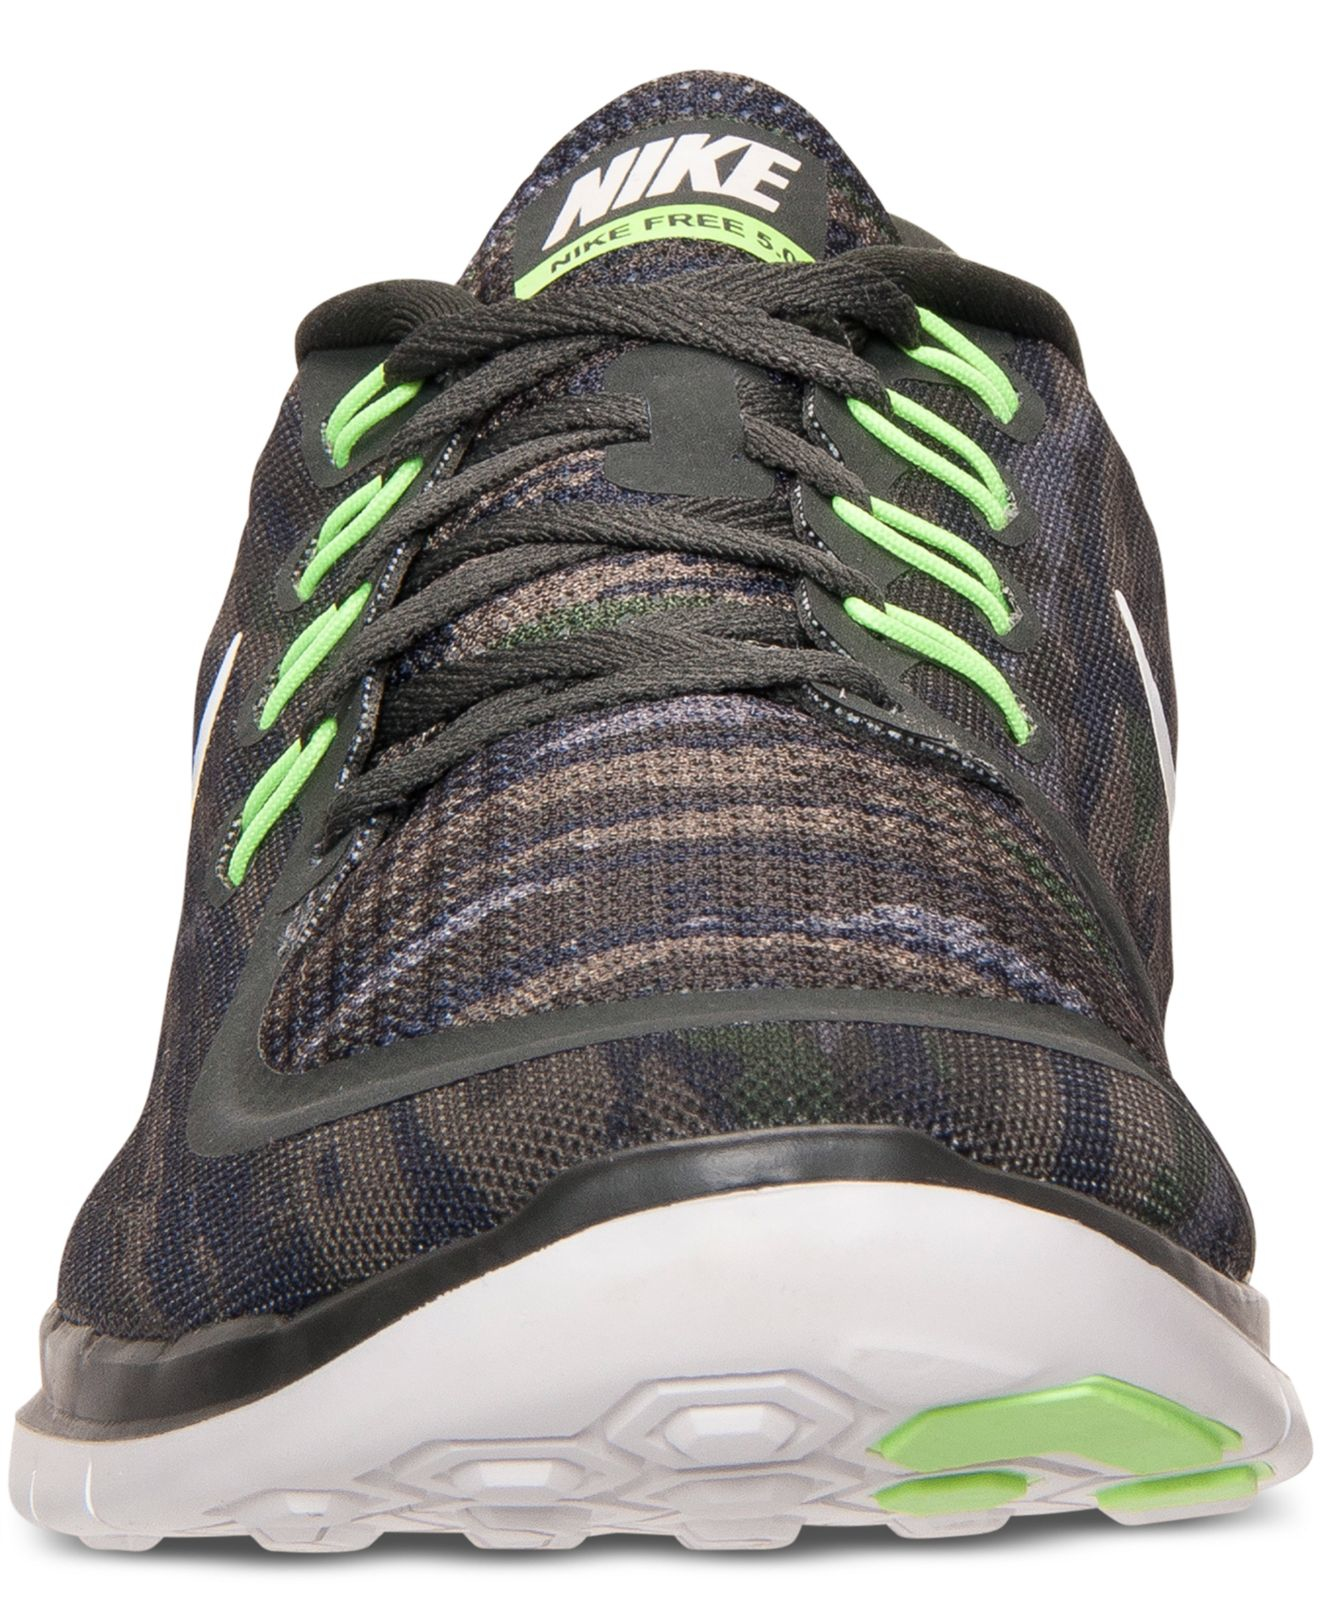 outlet store 65329 170ff ... aliexpress lyst nike mens free 5.0 print running sneakers from finish  line in green for men